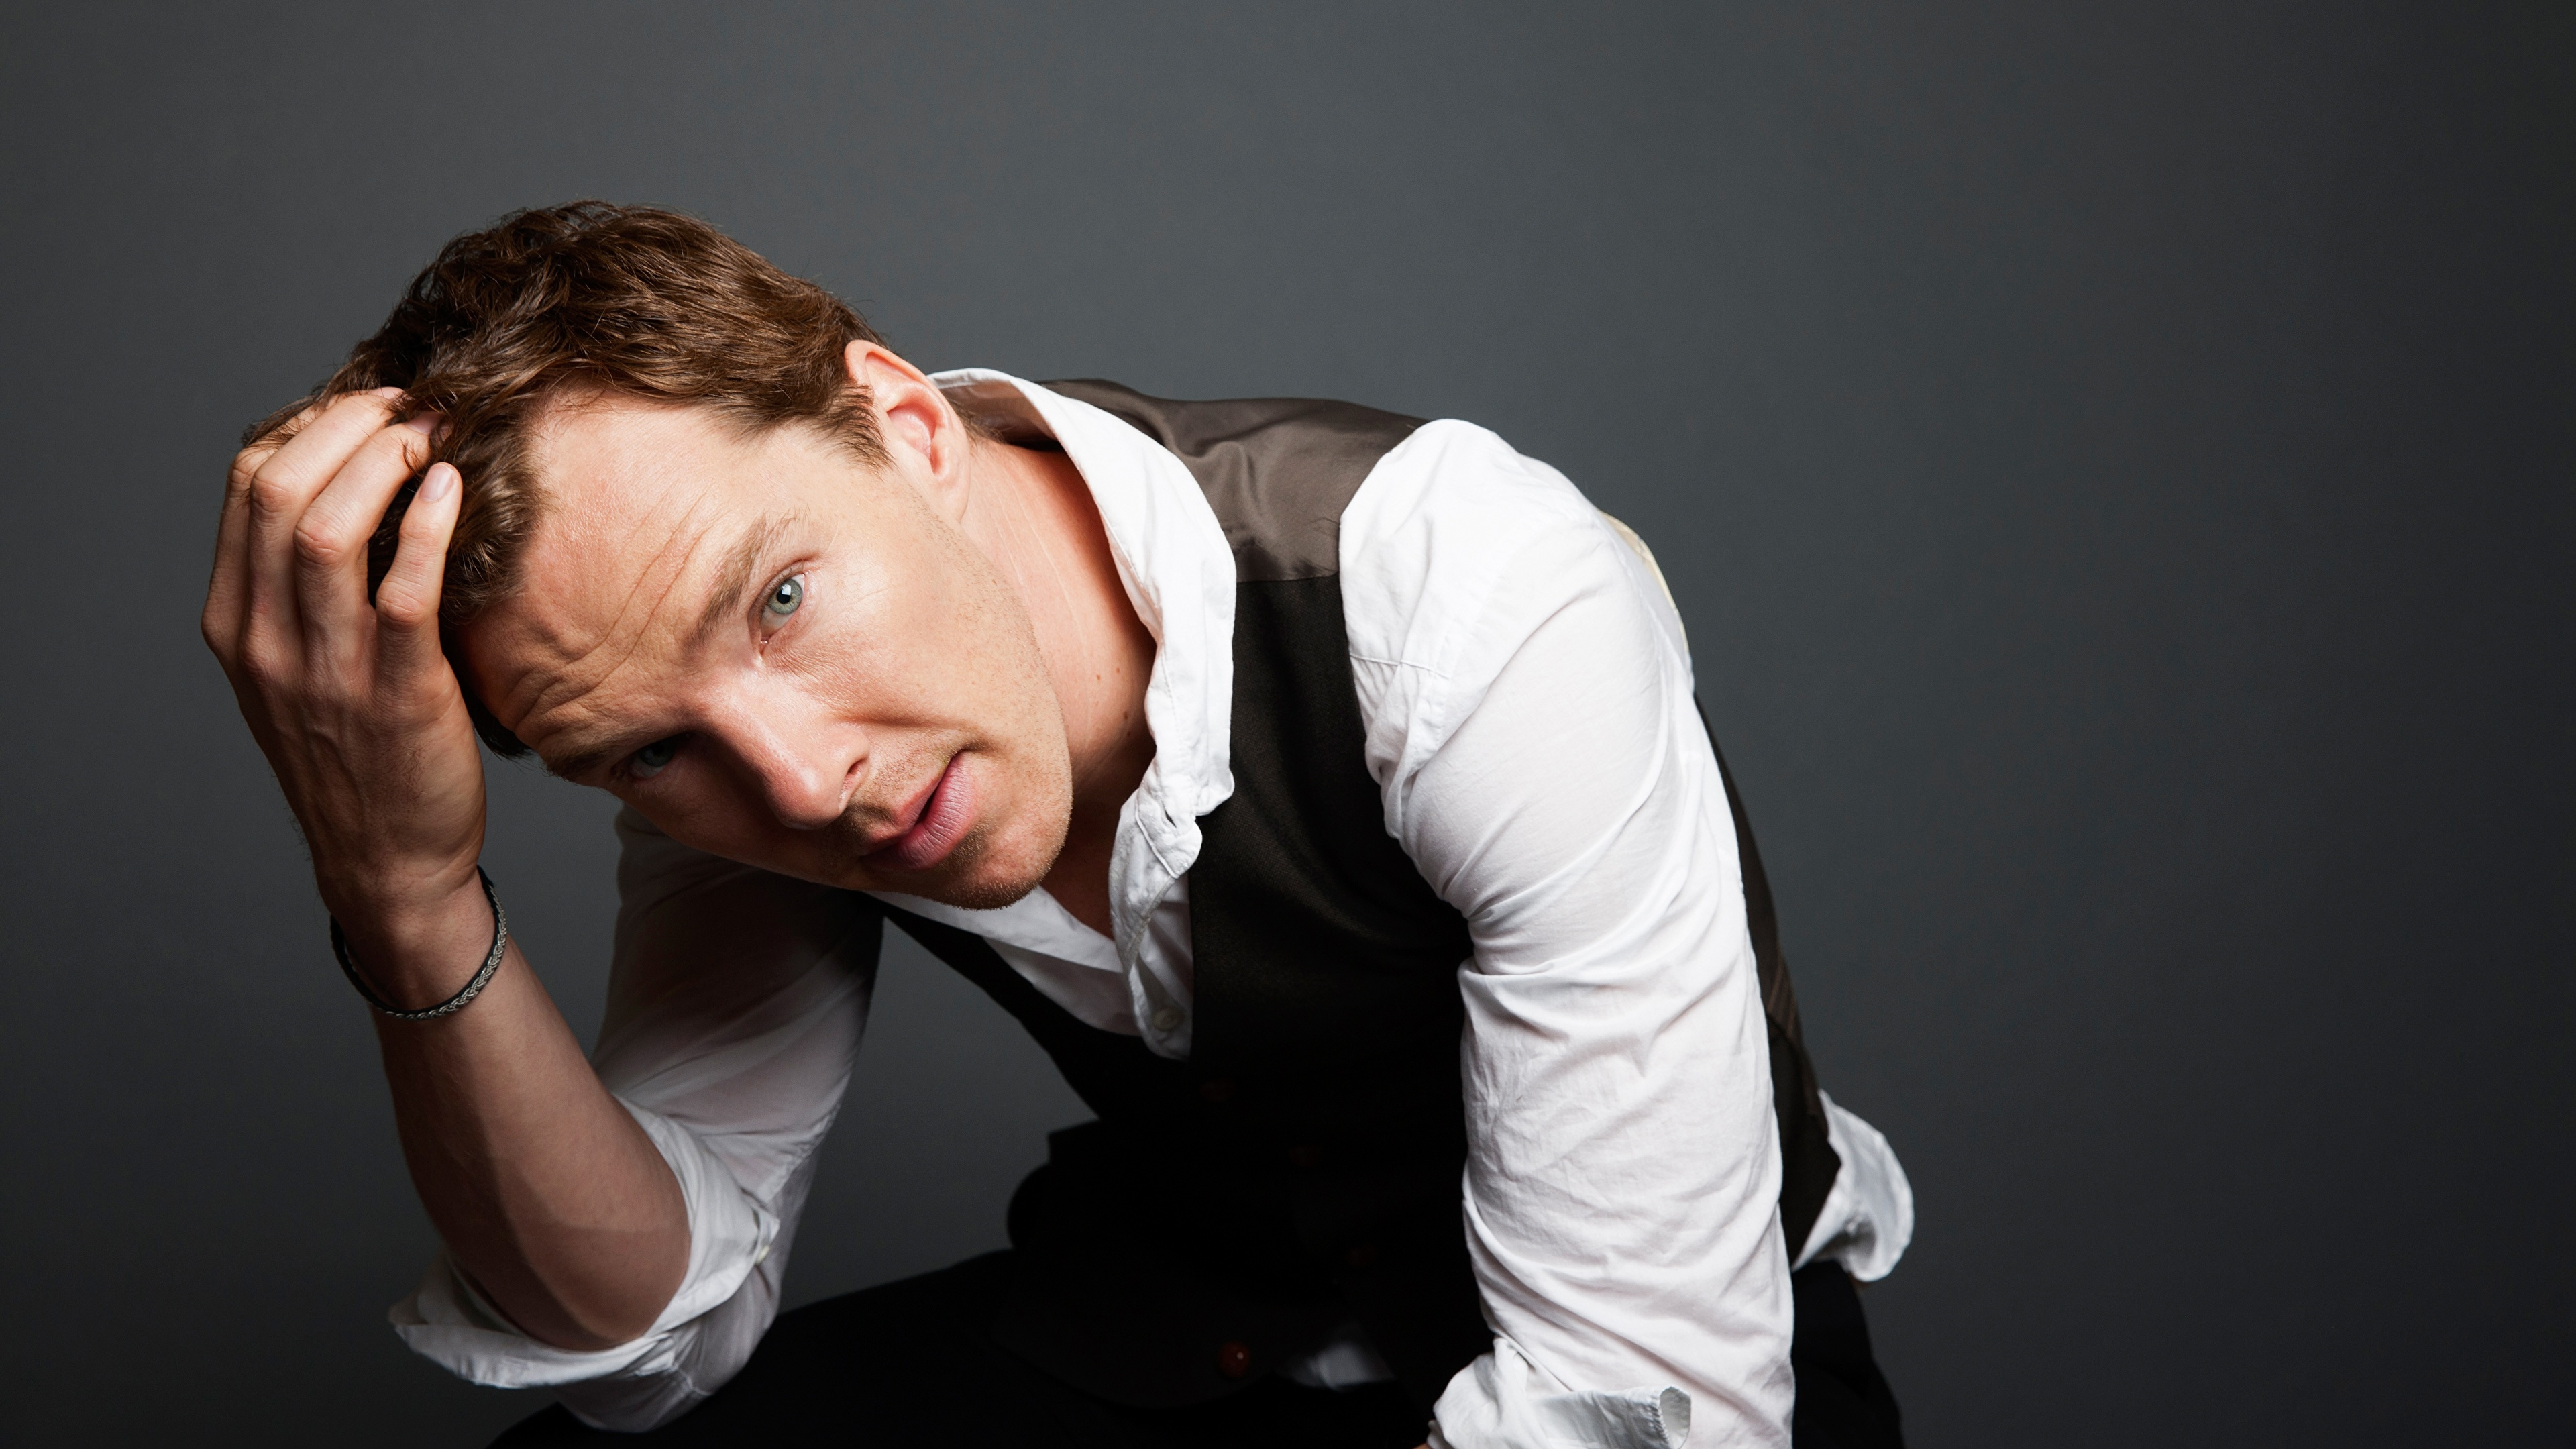 Wallpapers Benedict Cumberbatch Man Celebrities 3840x2160